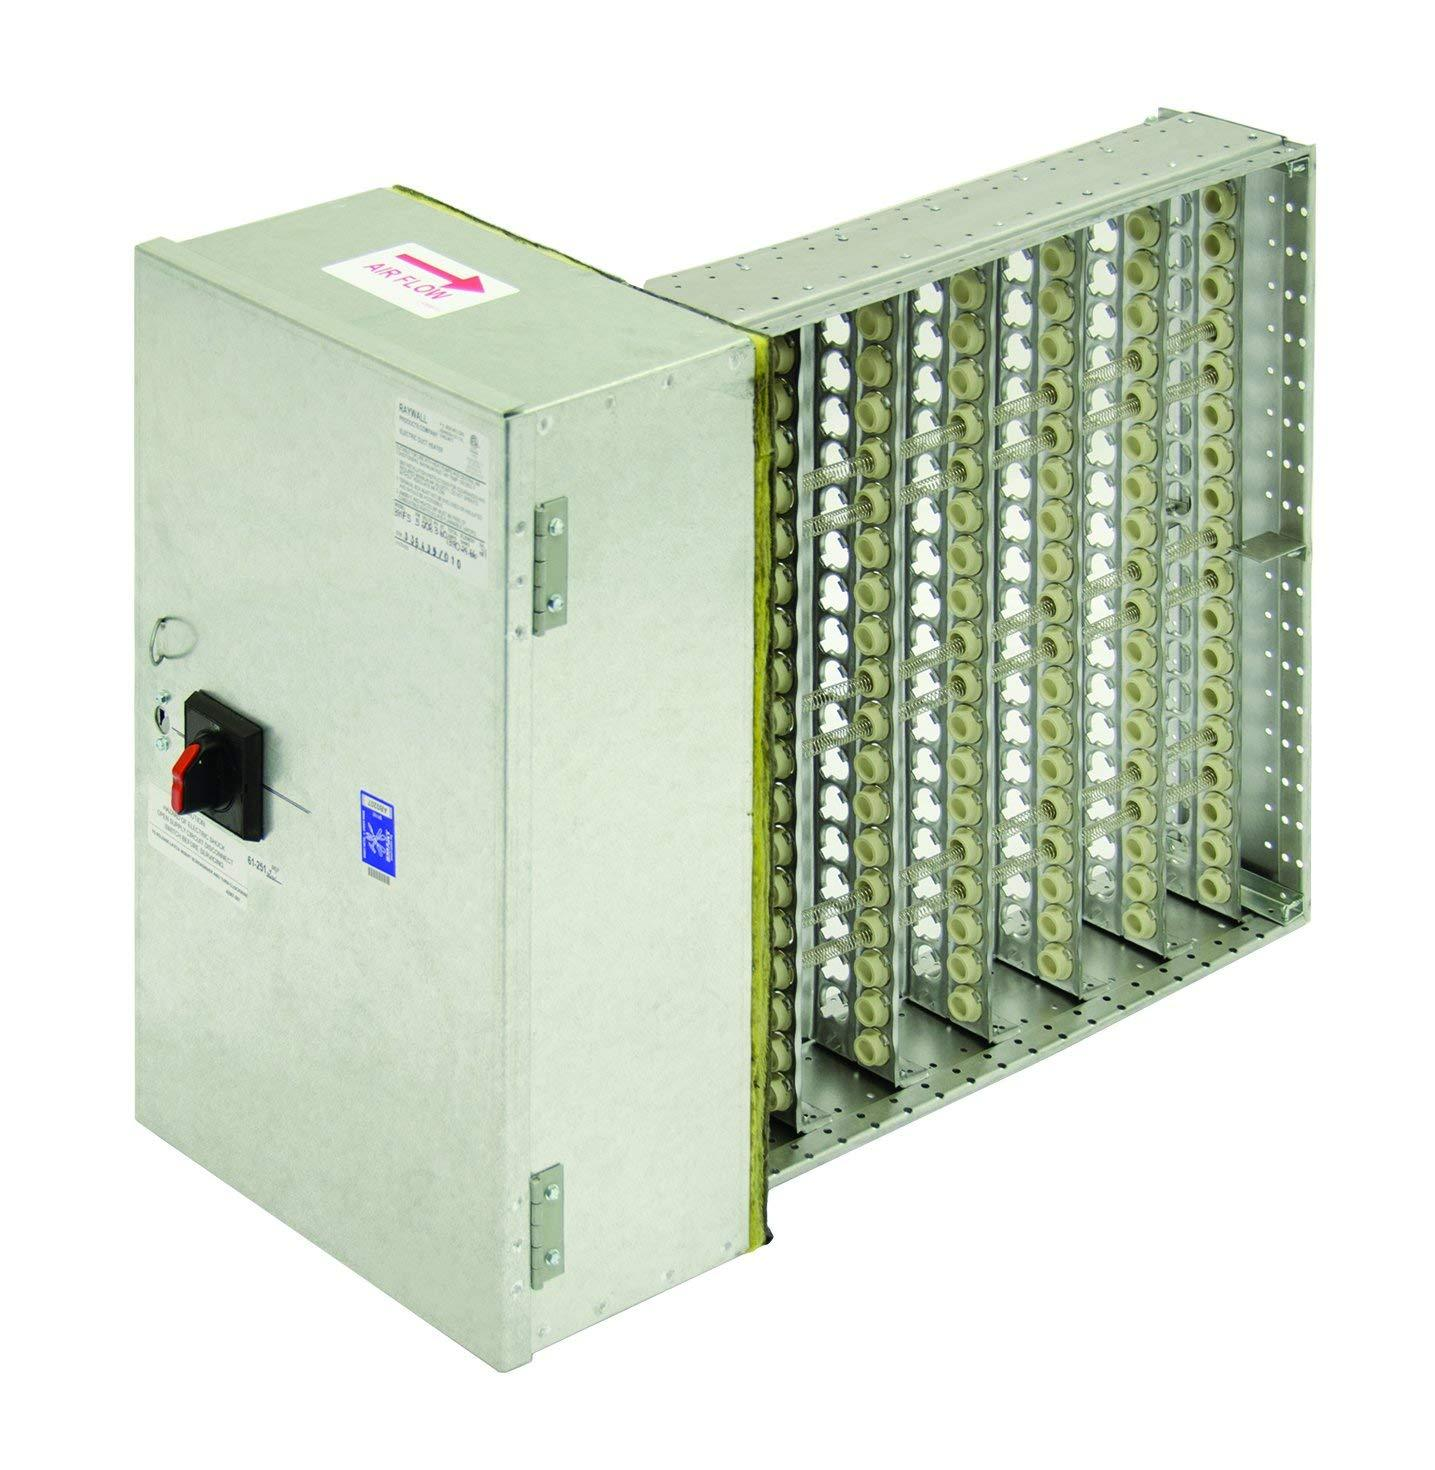 TPI 5KW 480V Packaged Duct Heater - 4PD51283